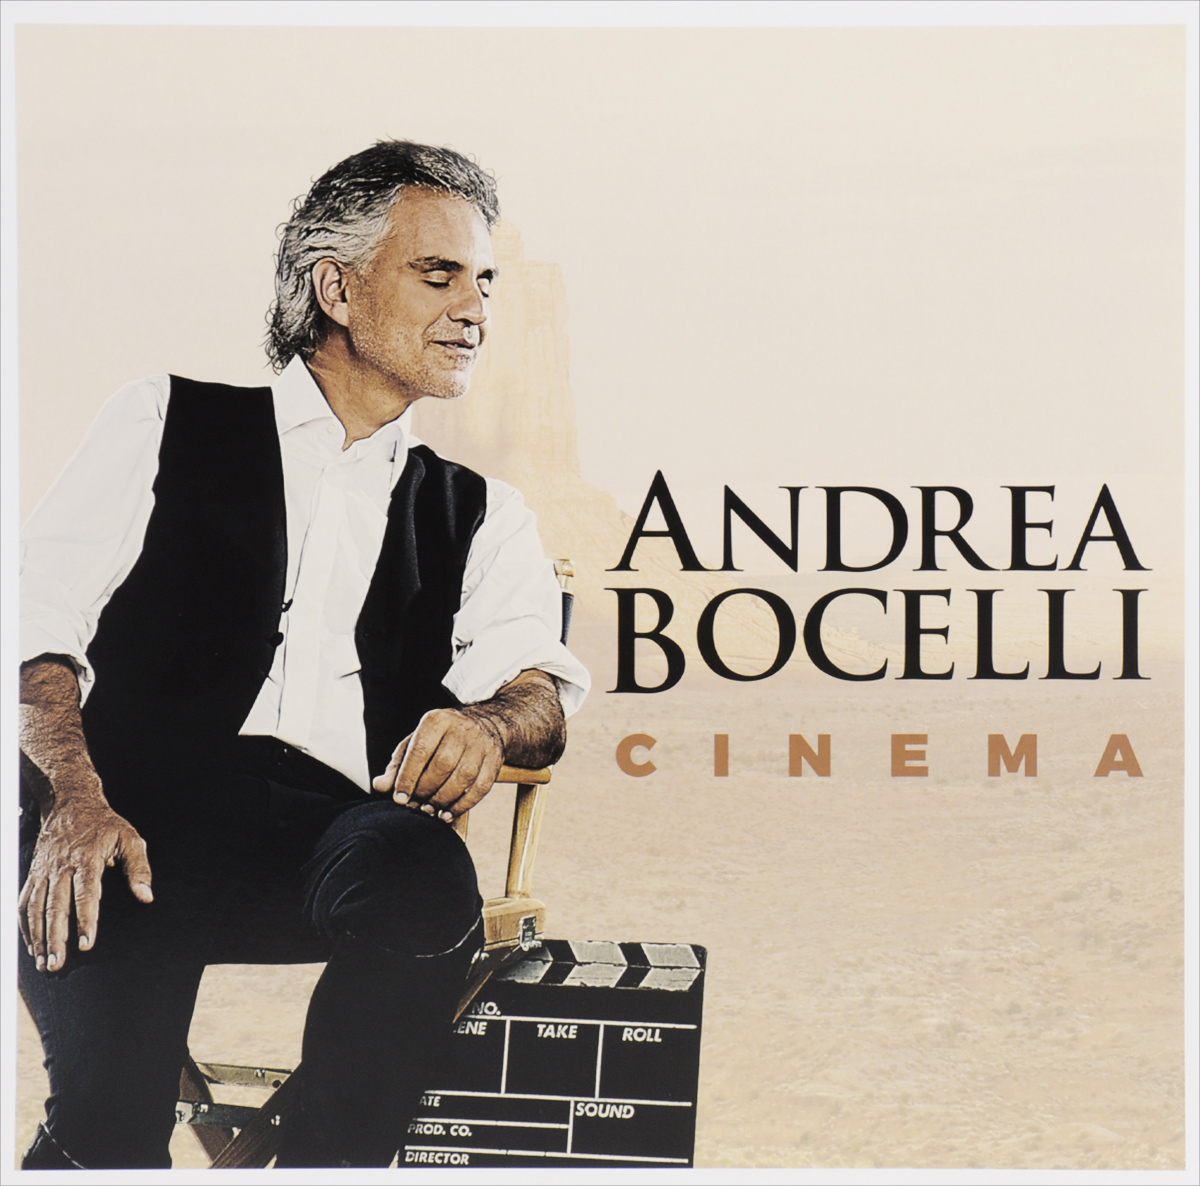 Andrea Bocelli. Cinema. Limited Edition (2 LP)